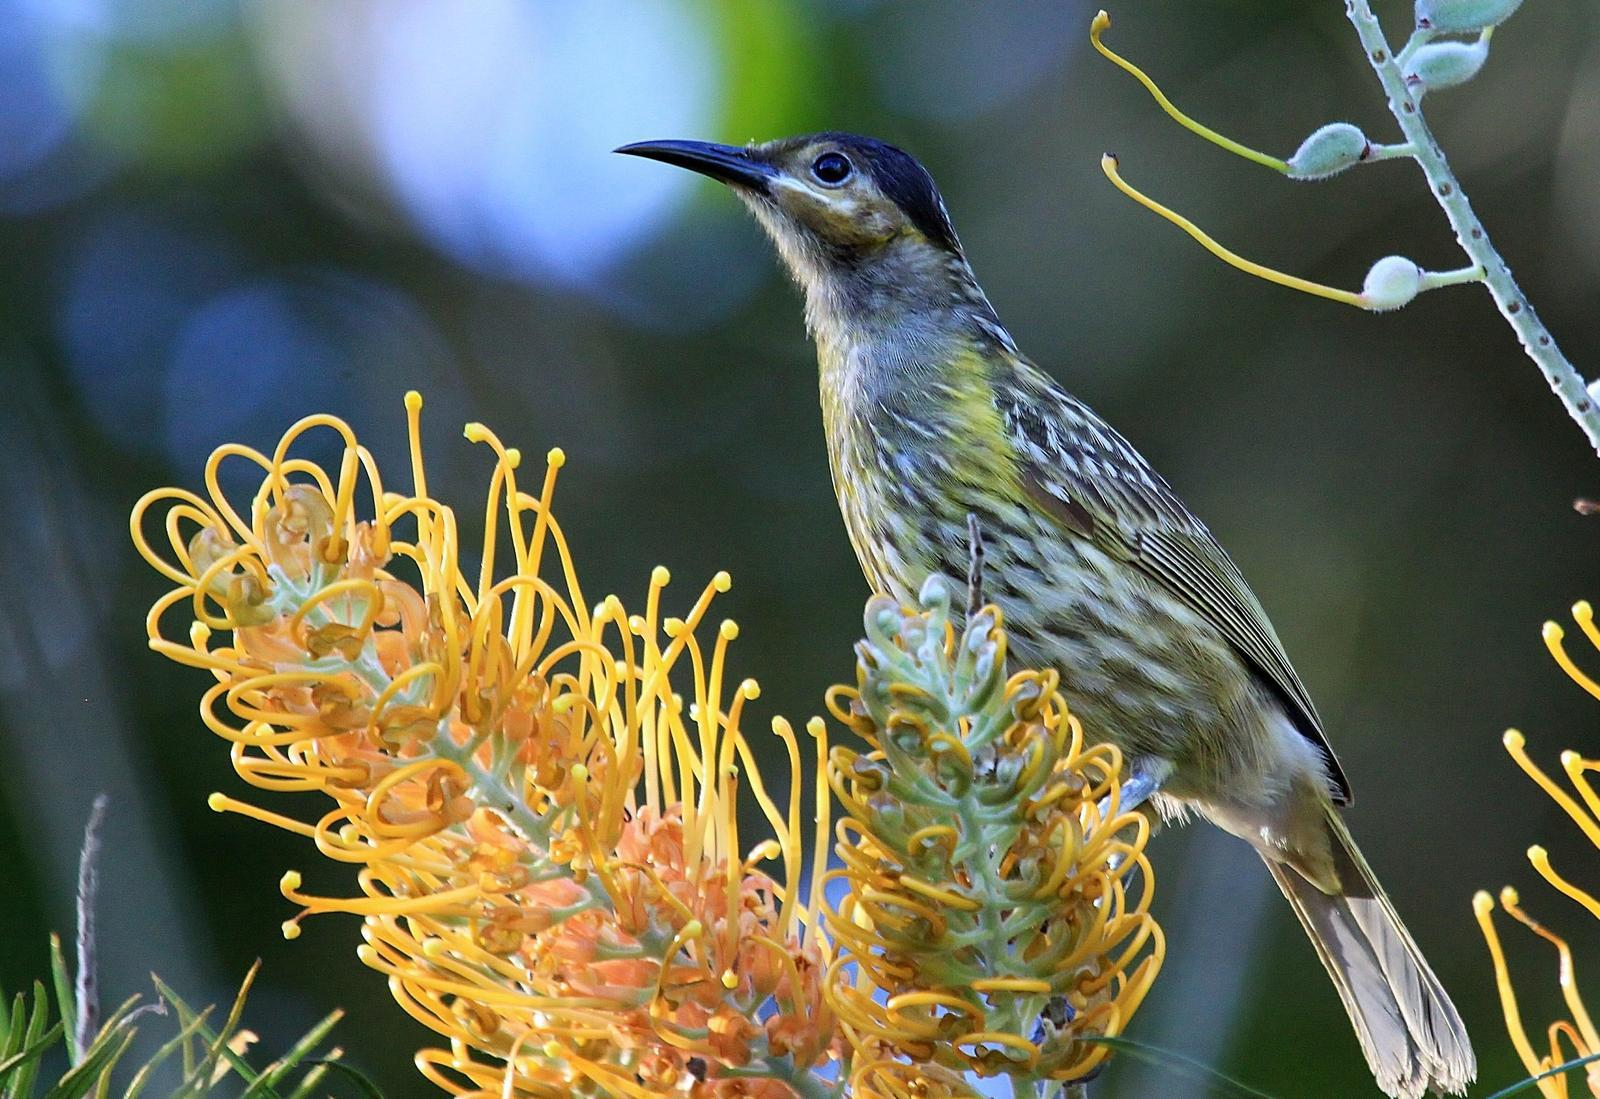 Macleay's Honeyeater Photo by Matthew McCluskey